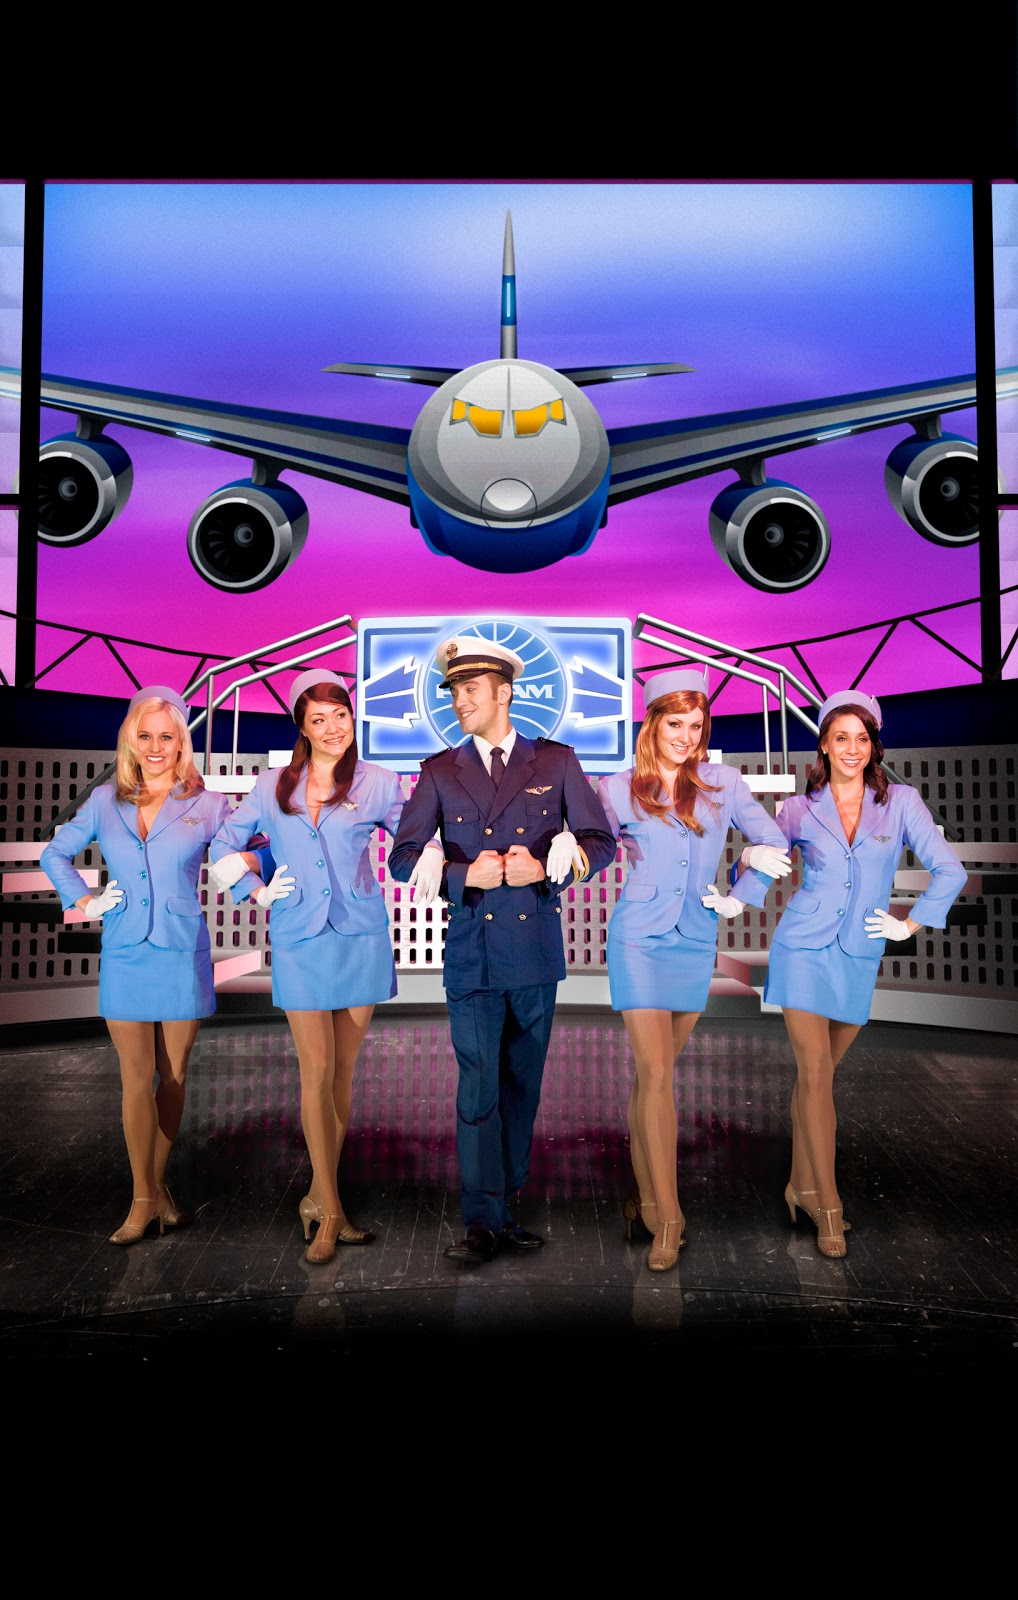 Frank abagnale jr the real story behind catch me if you can